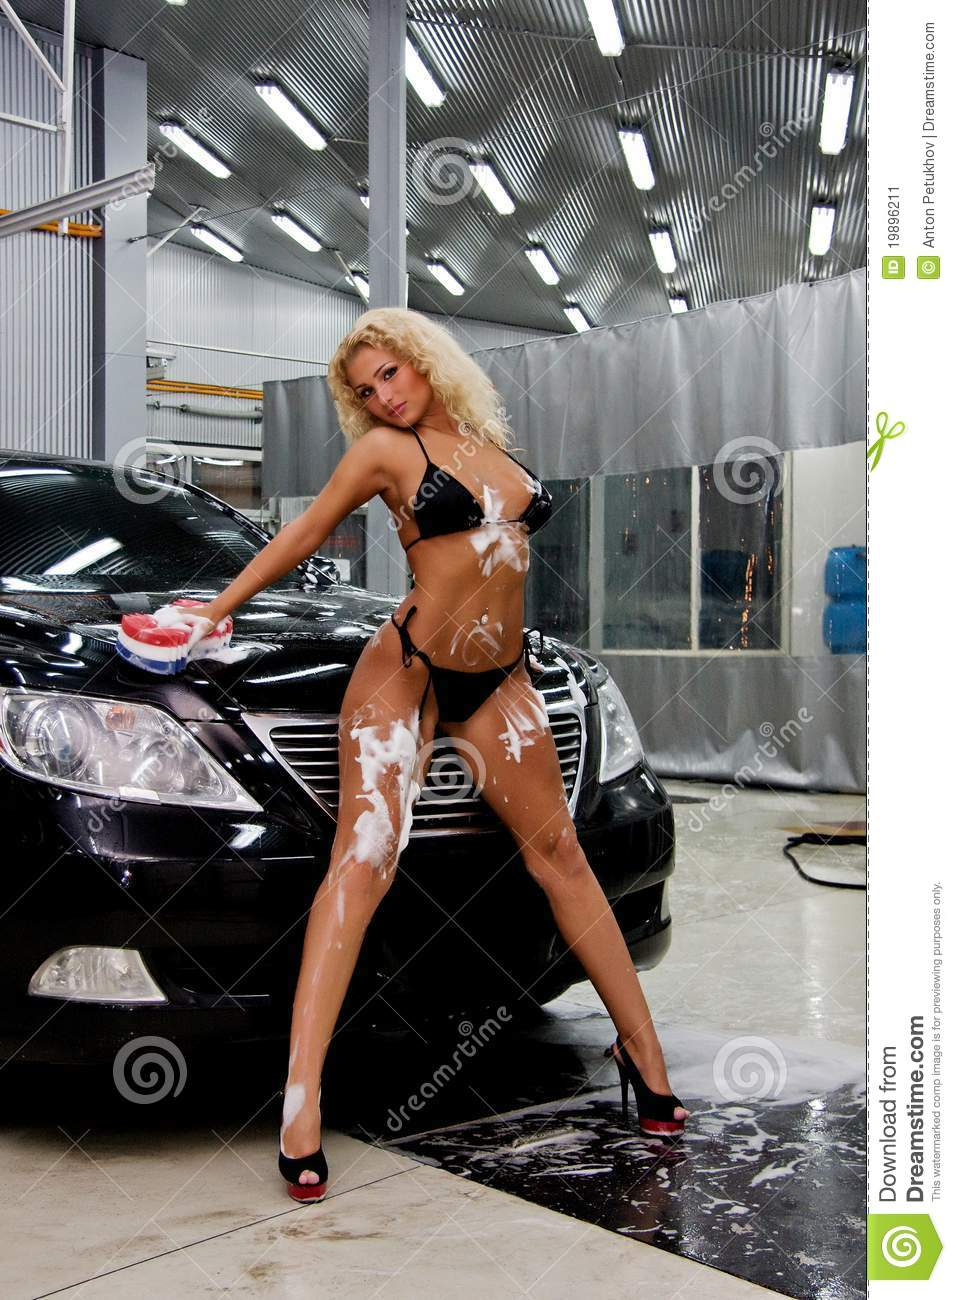 Free Wallpapers Cars And Beautiful Ladies Girl Washing A Car Stock Image Image Of Suit High